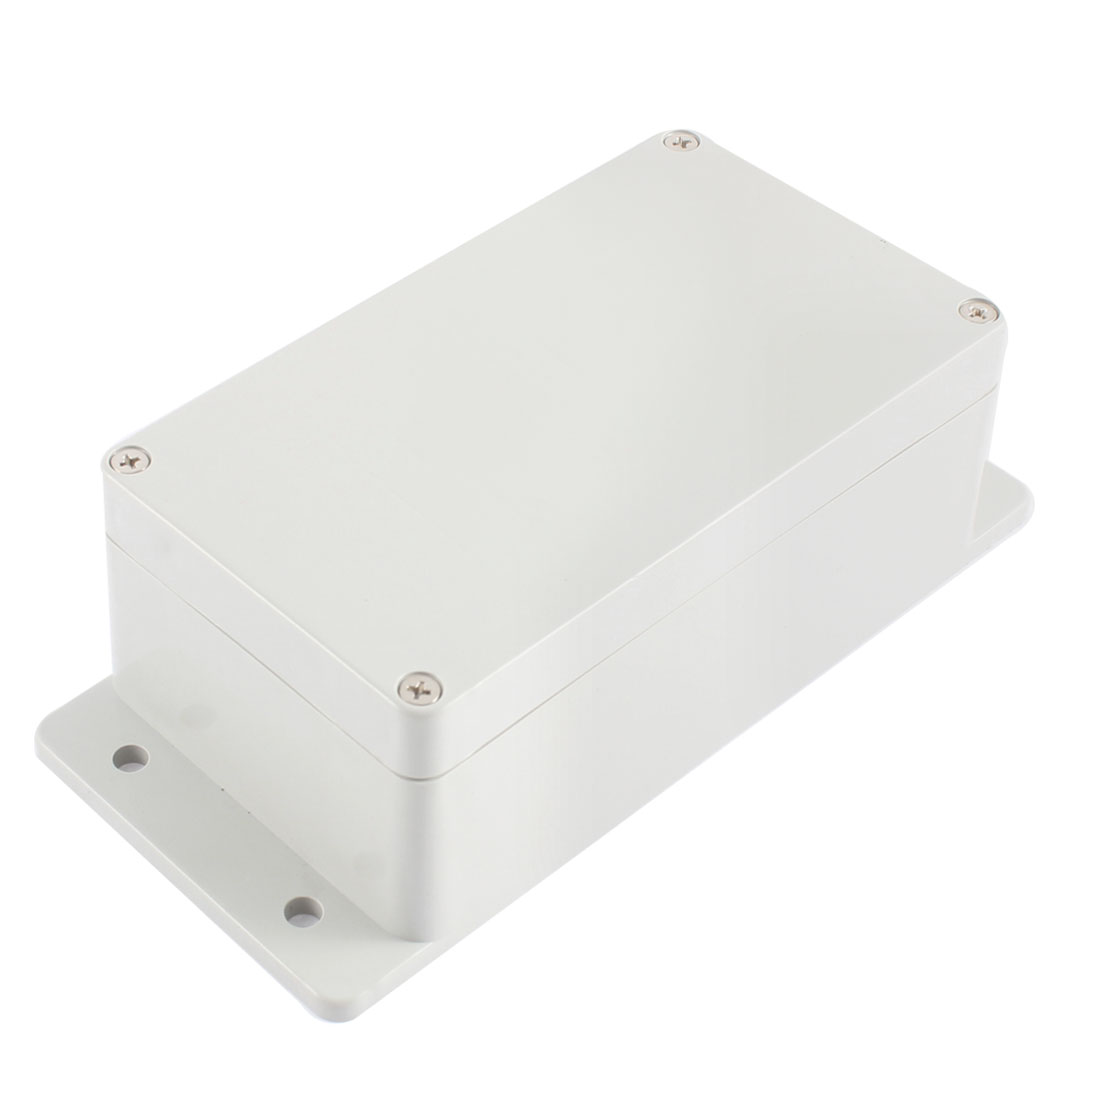 Wall-mounted Plastic Enclosure Junction Electronic Project Box 158 x 88 x 60mm